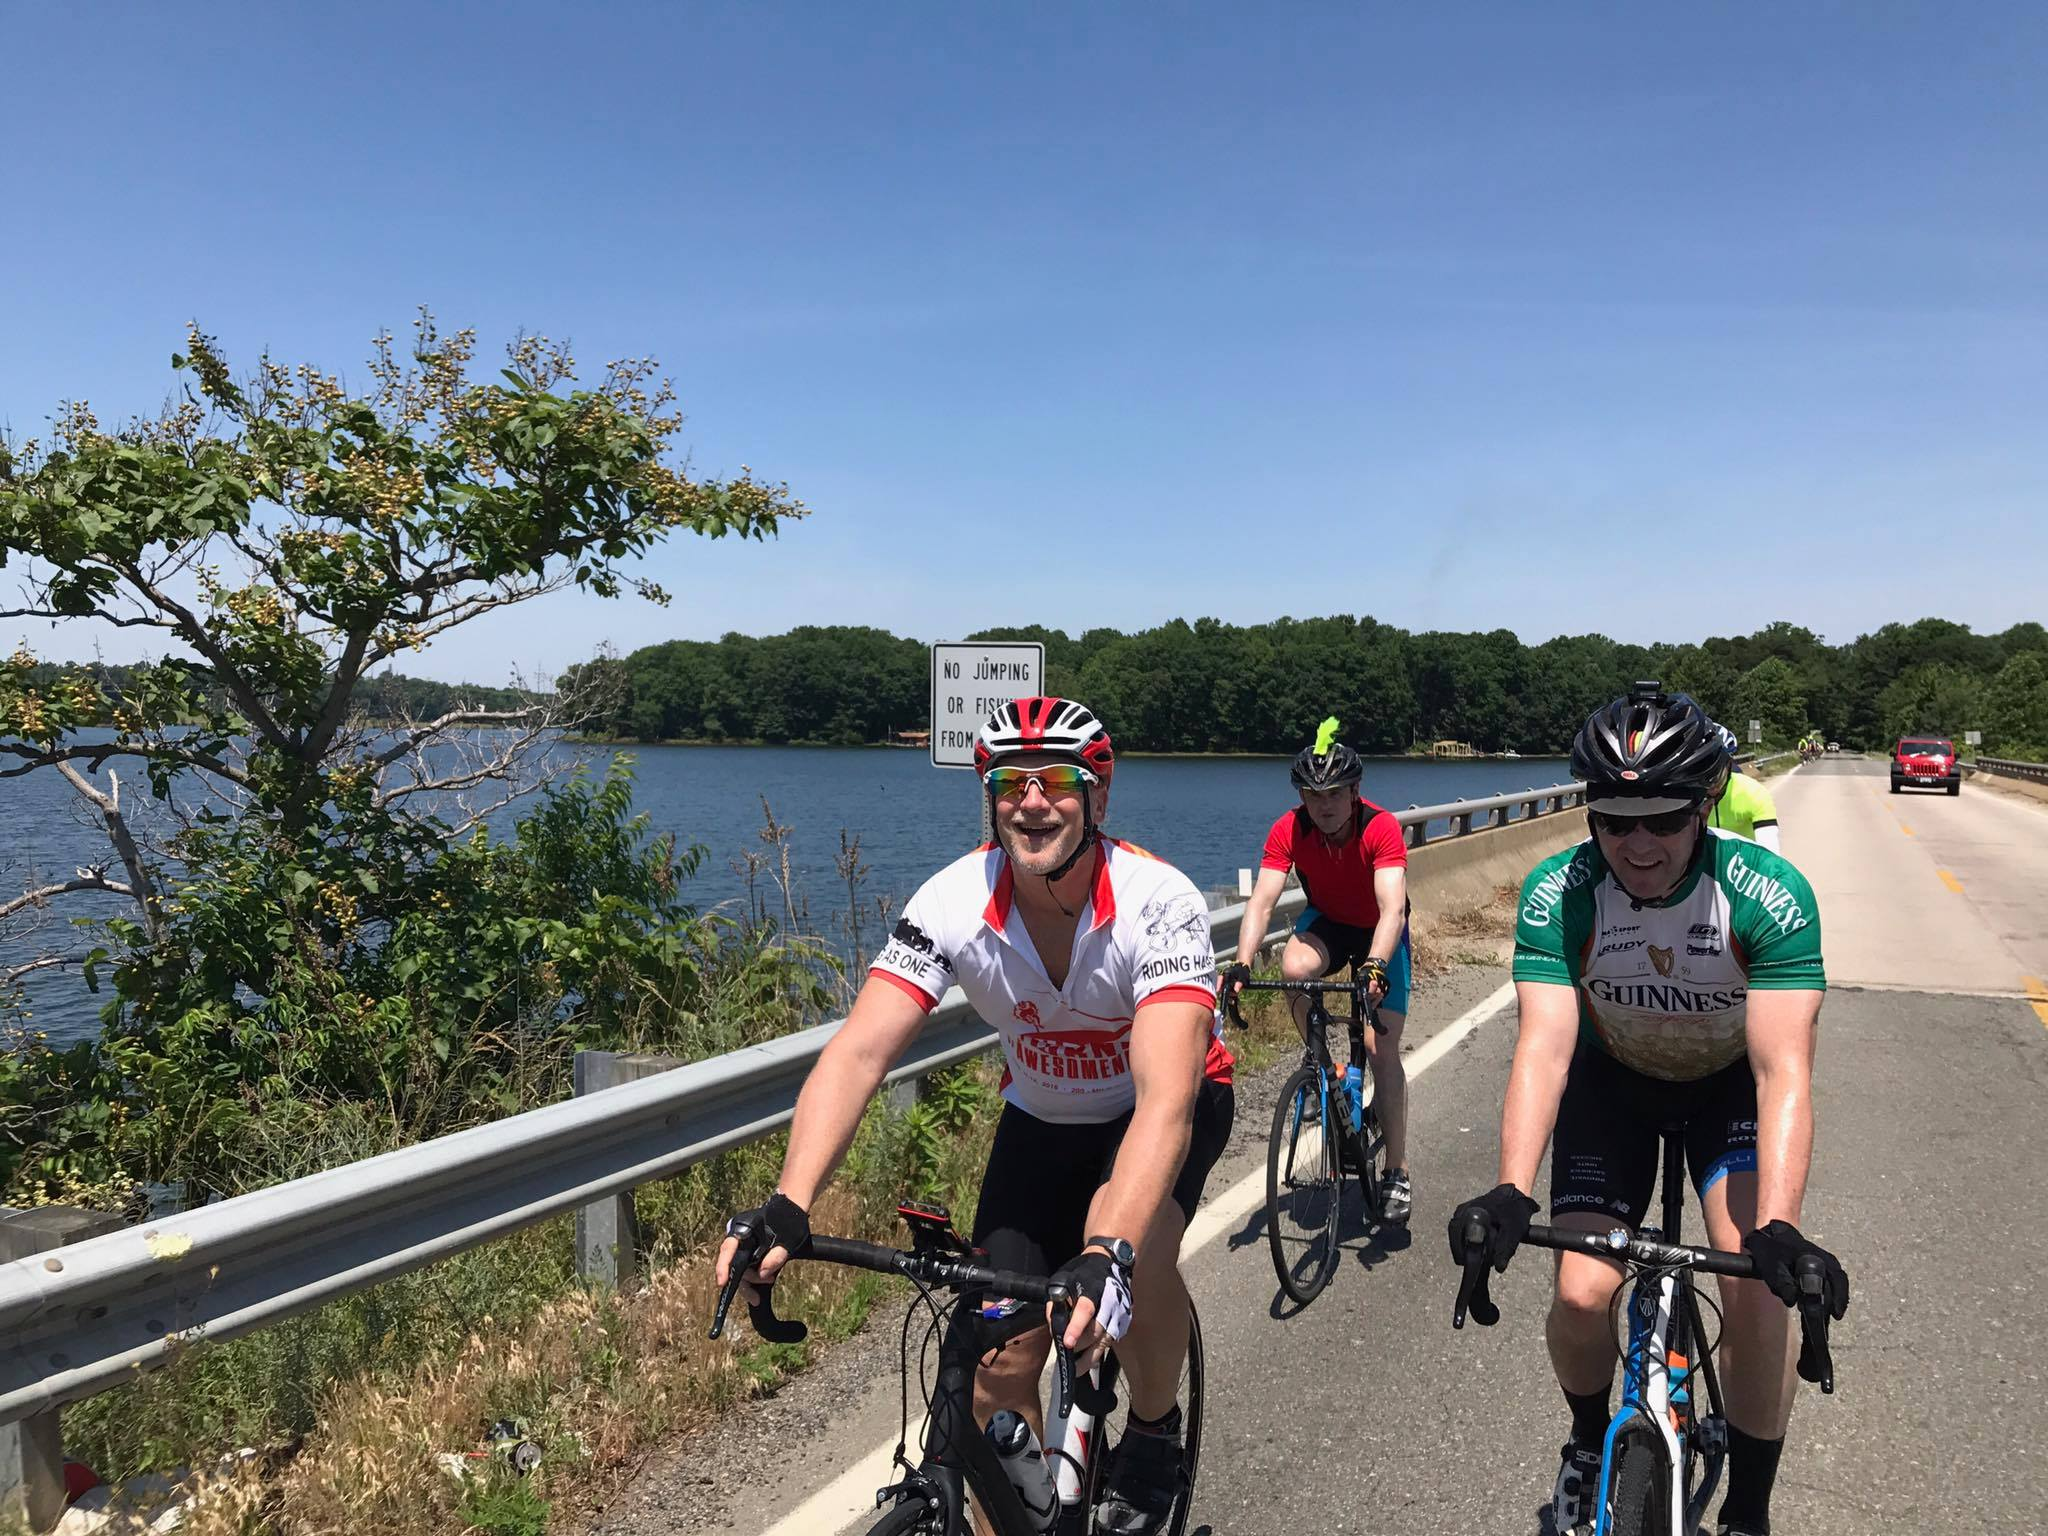 RIDE - Inspired? Challenge yourself and join the Journey of Awesomeness. Whether you do it for fitness, fellowship, fun or fundraising – it's an epic opportunity to be outdoors for two full days in beautiful Virginia.